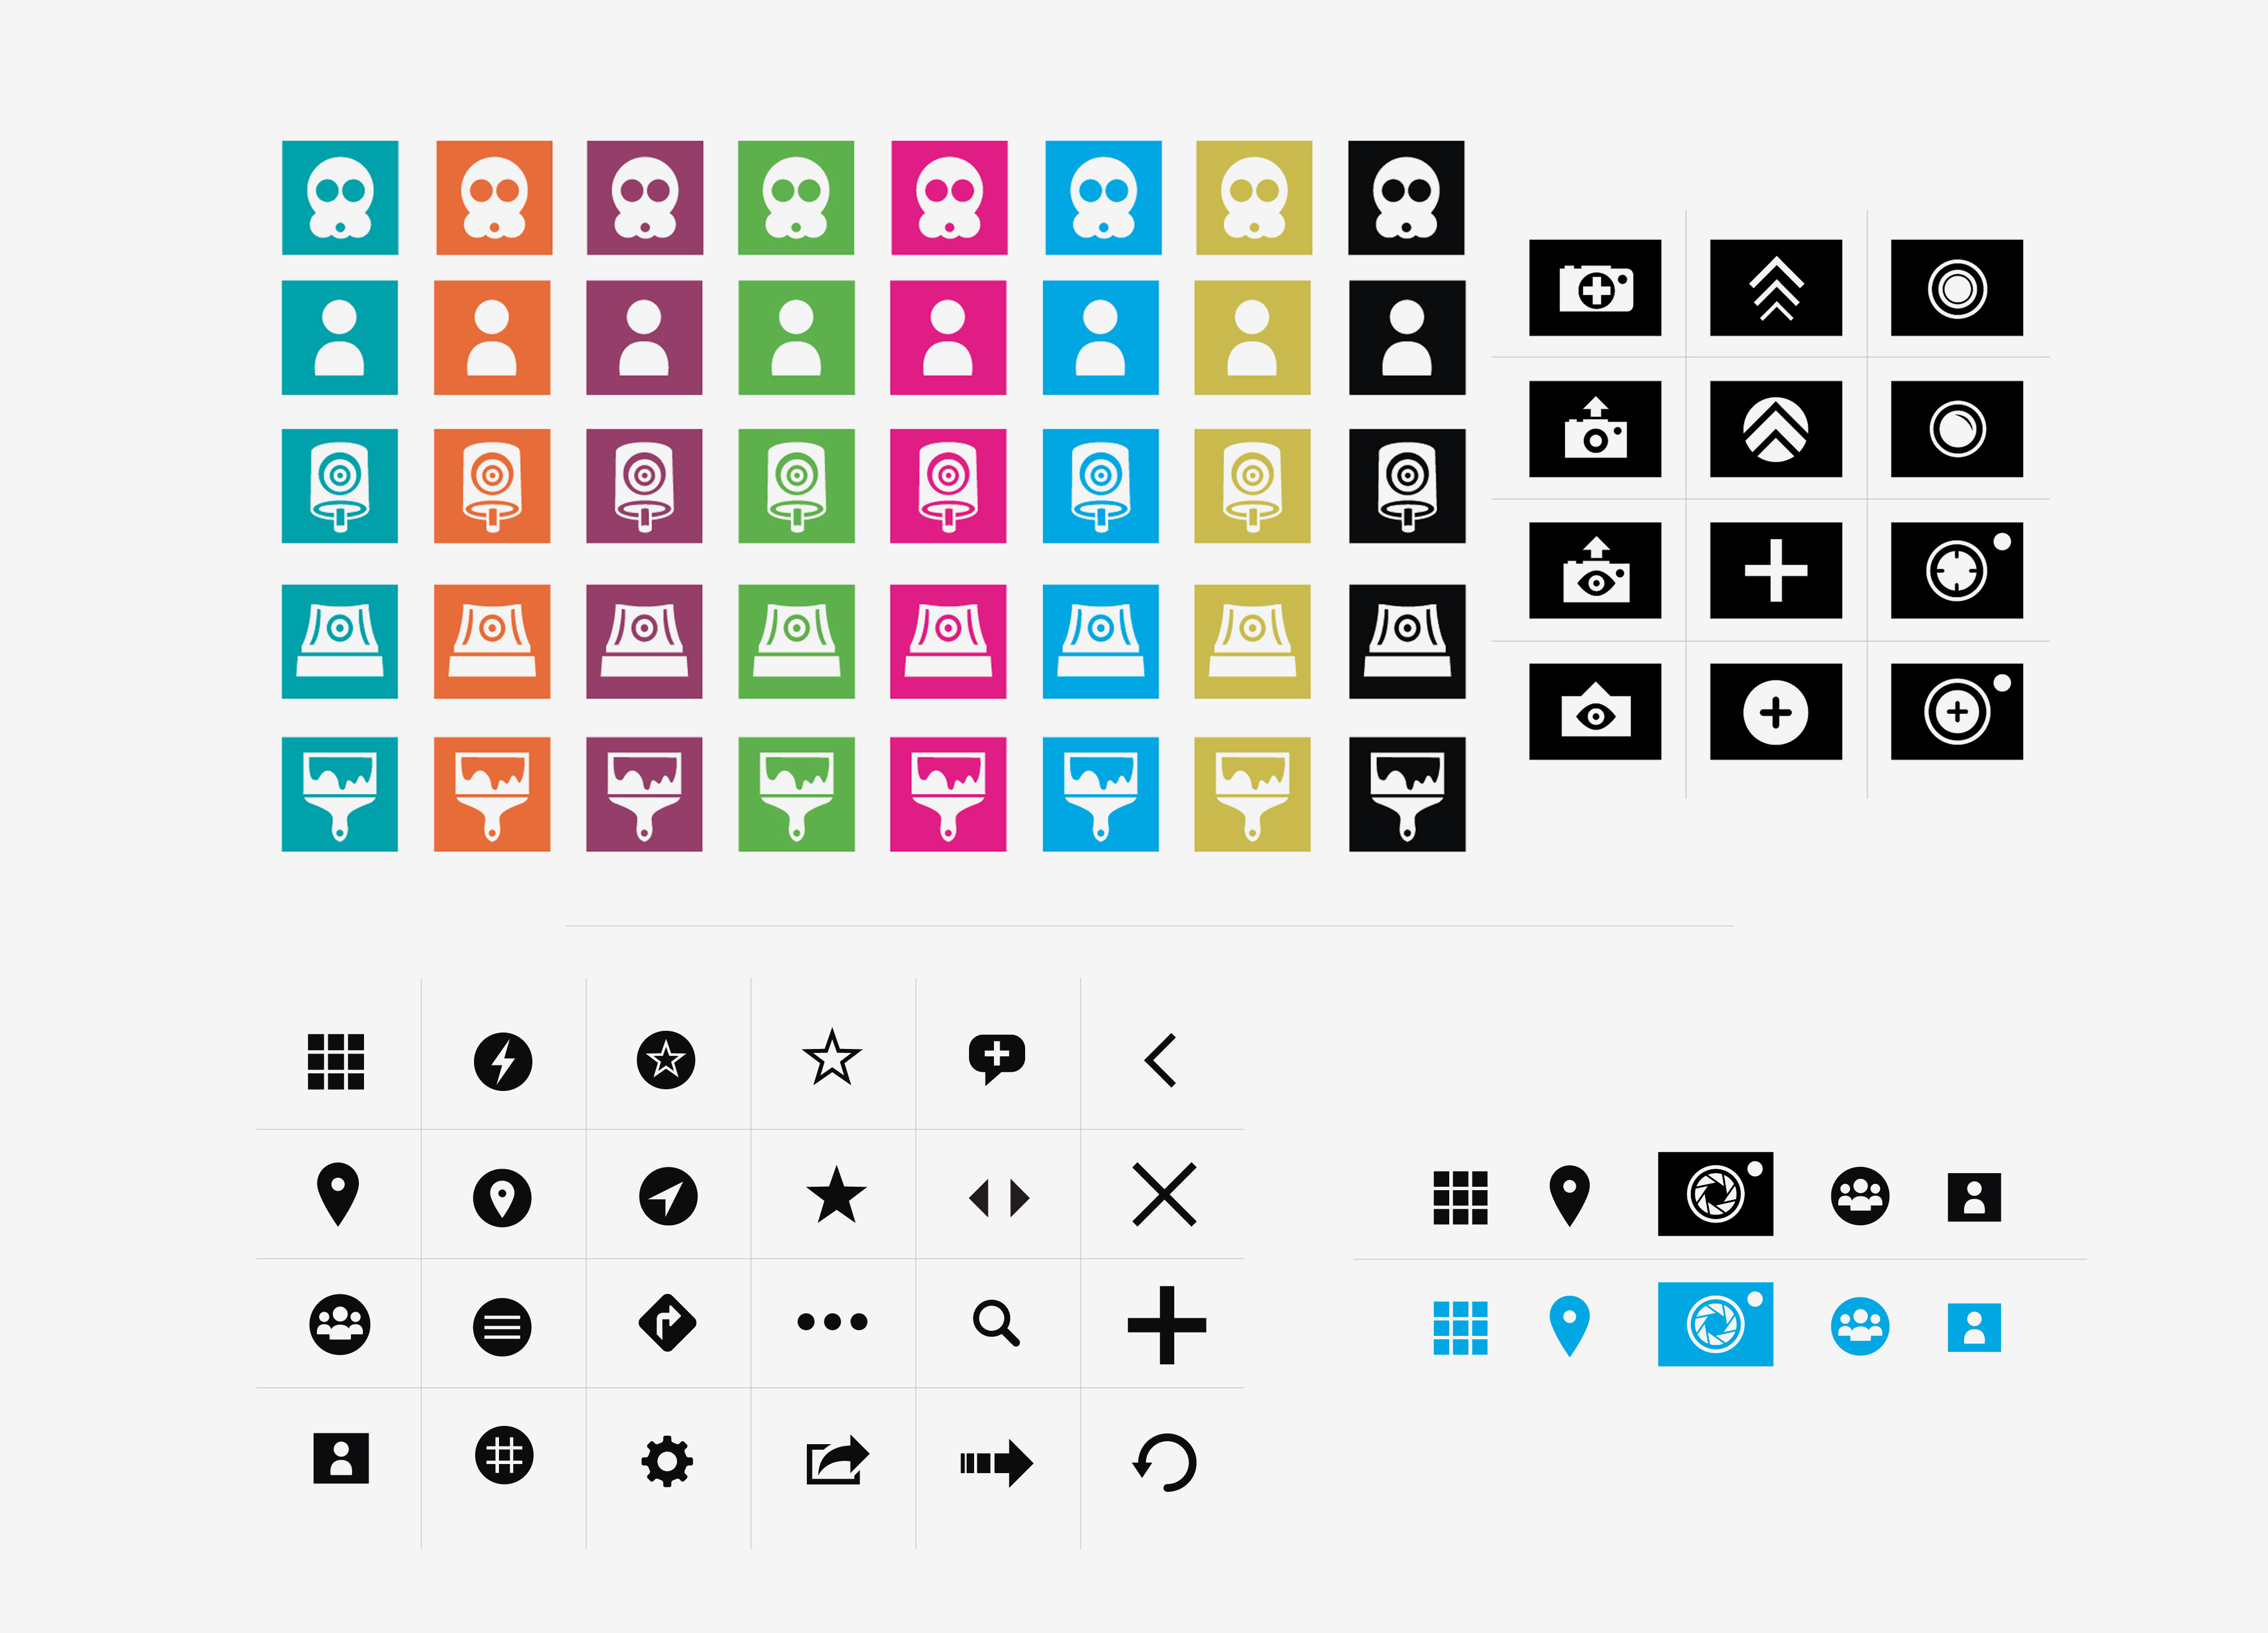 1:AM application icons designed in various colors